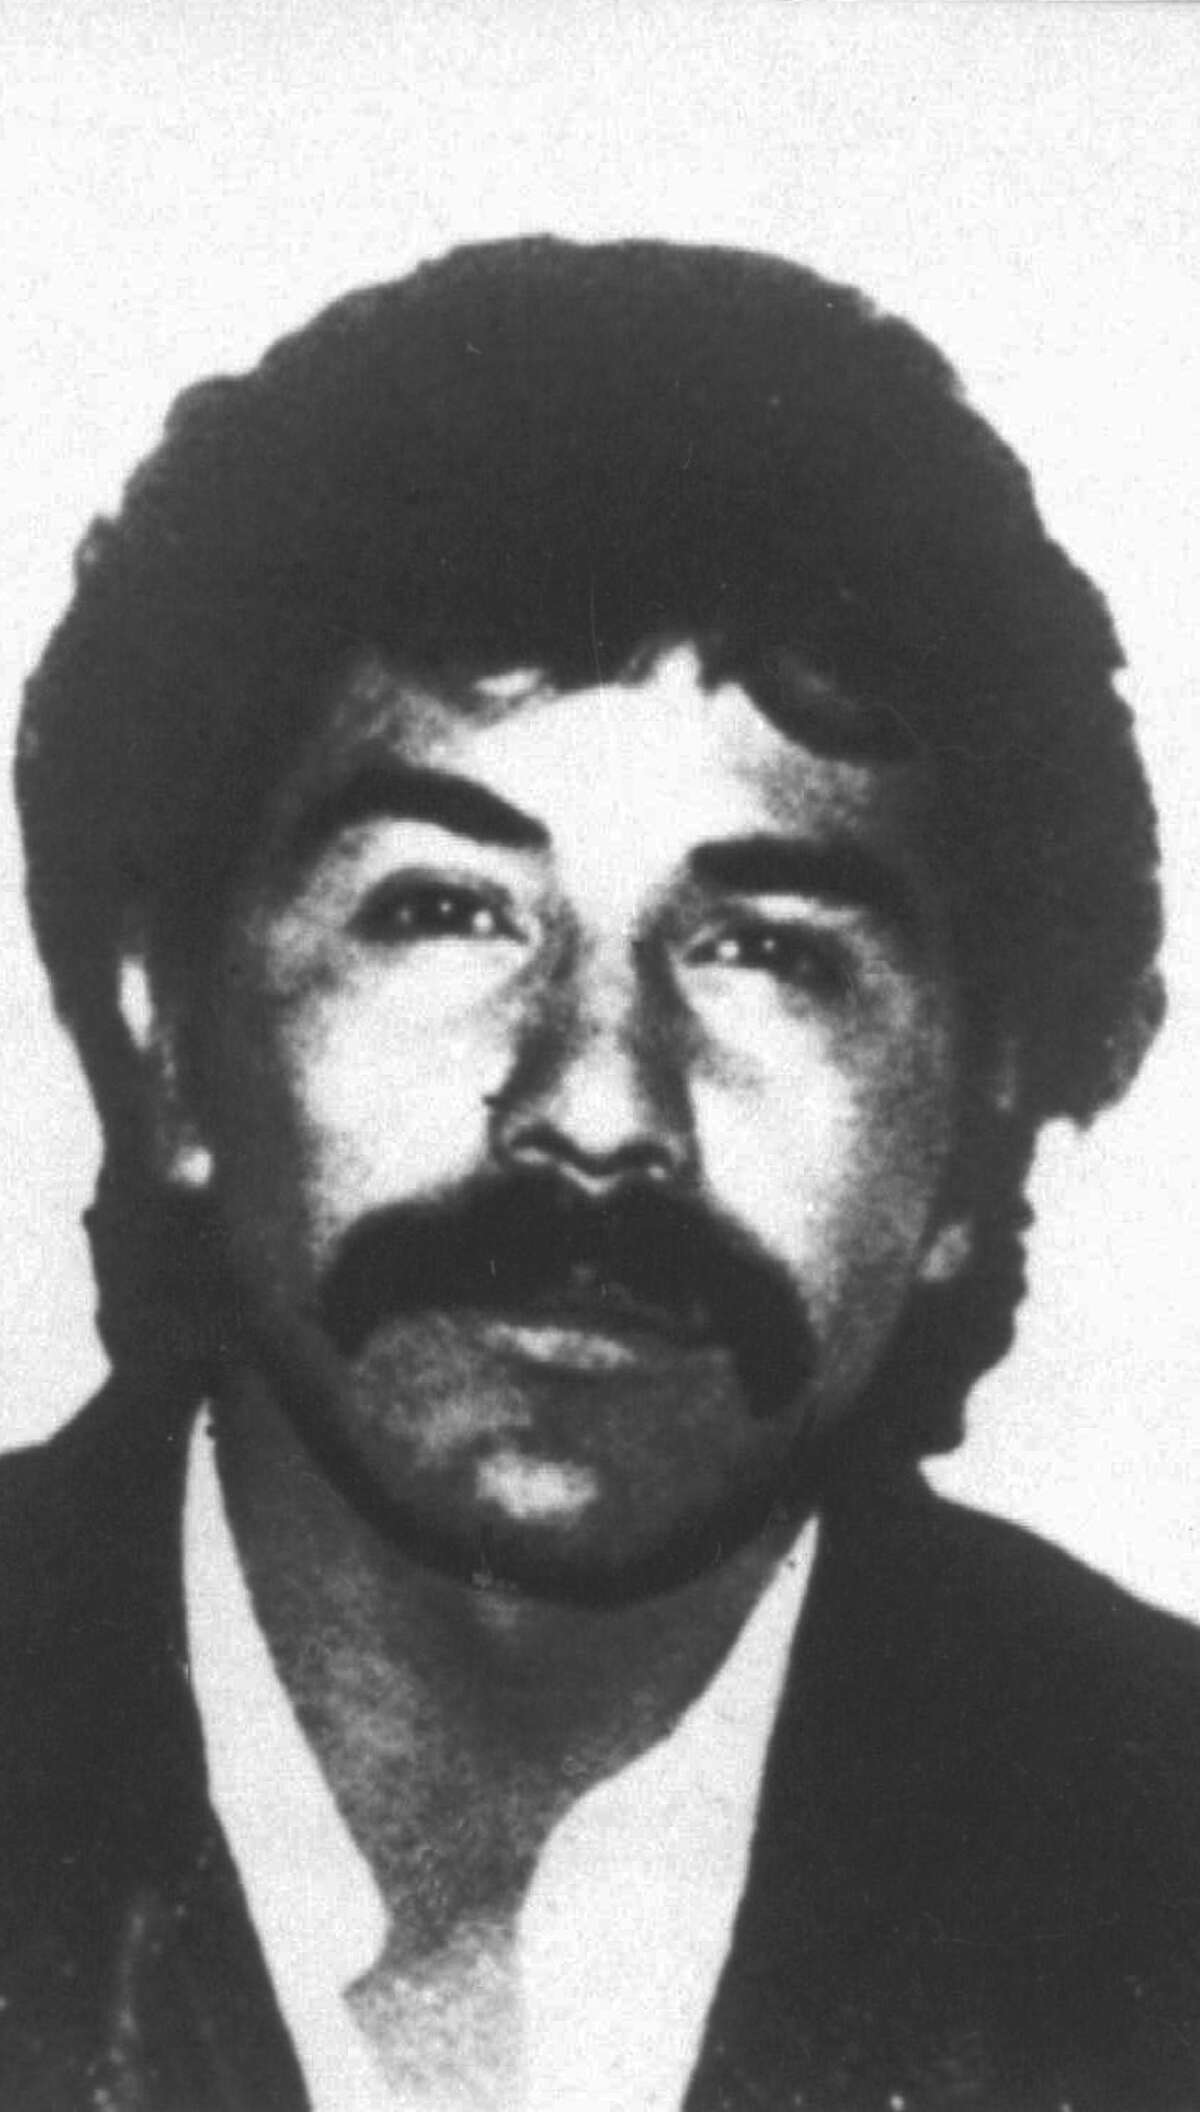 CORRECTS DATE OF ANNOUNCEMENT - FILE - This undated file photo provided by Mexico's government shows drug lord Rafael Caro Quintero in an unknown location. Chihuahua Attorney General Jorge Gonzalez told reporters on Tuesday, July 5, 2016 that the old-guard drug lord mistakenly released in 2013 is apparently trying to get back into the drug trade. (Mexico's government via AP/File) ORG XMIT: XLAT136